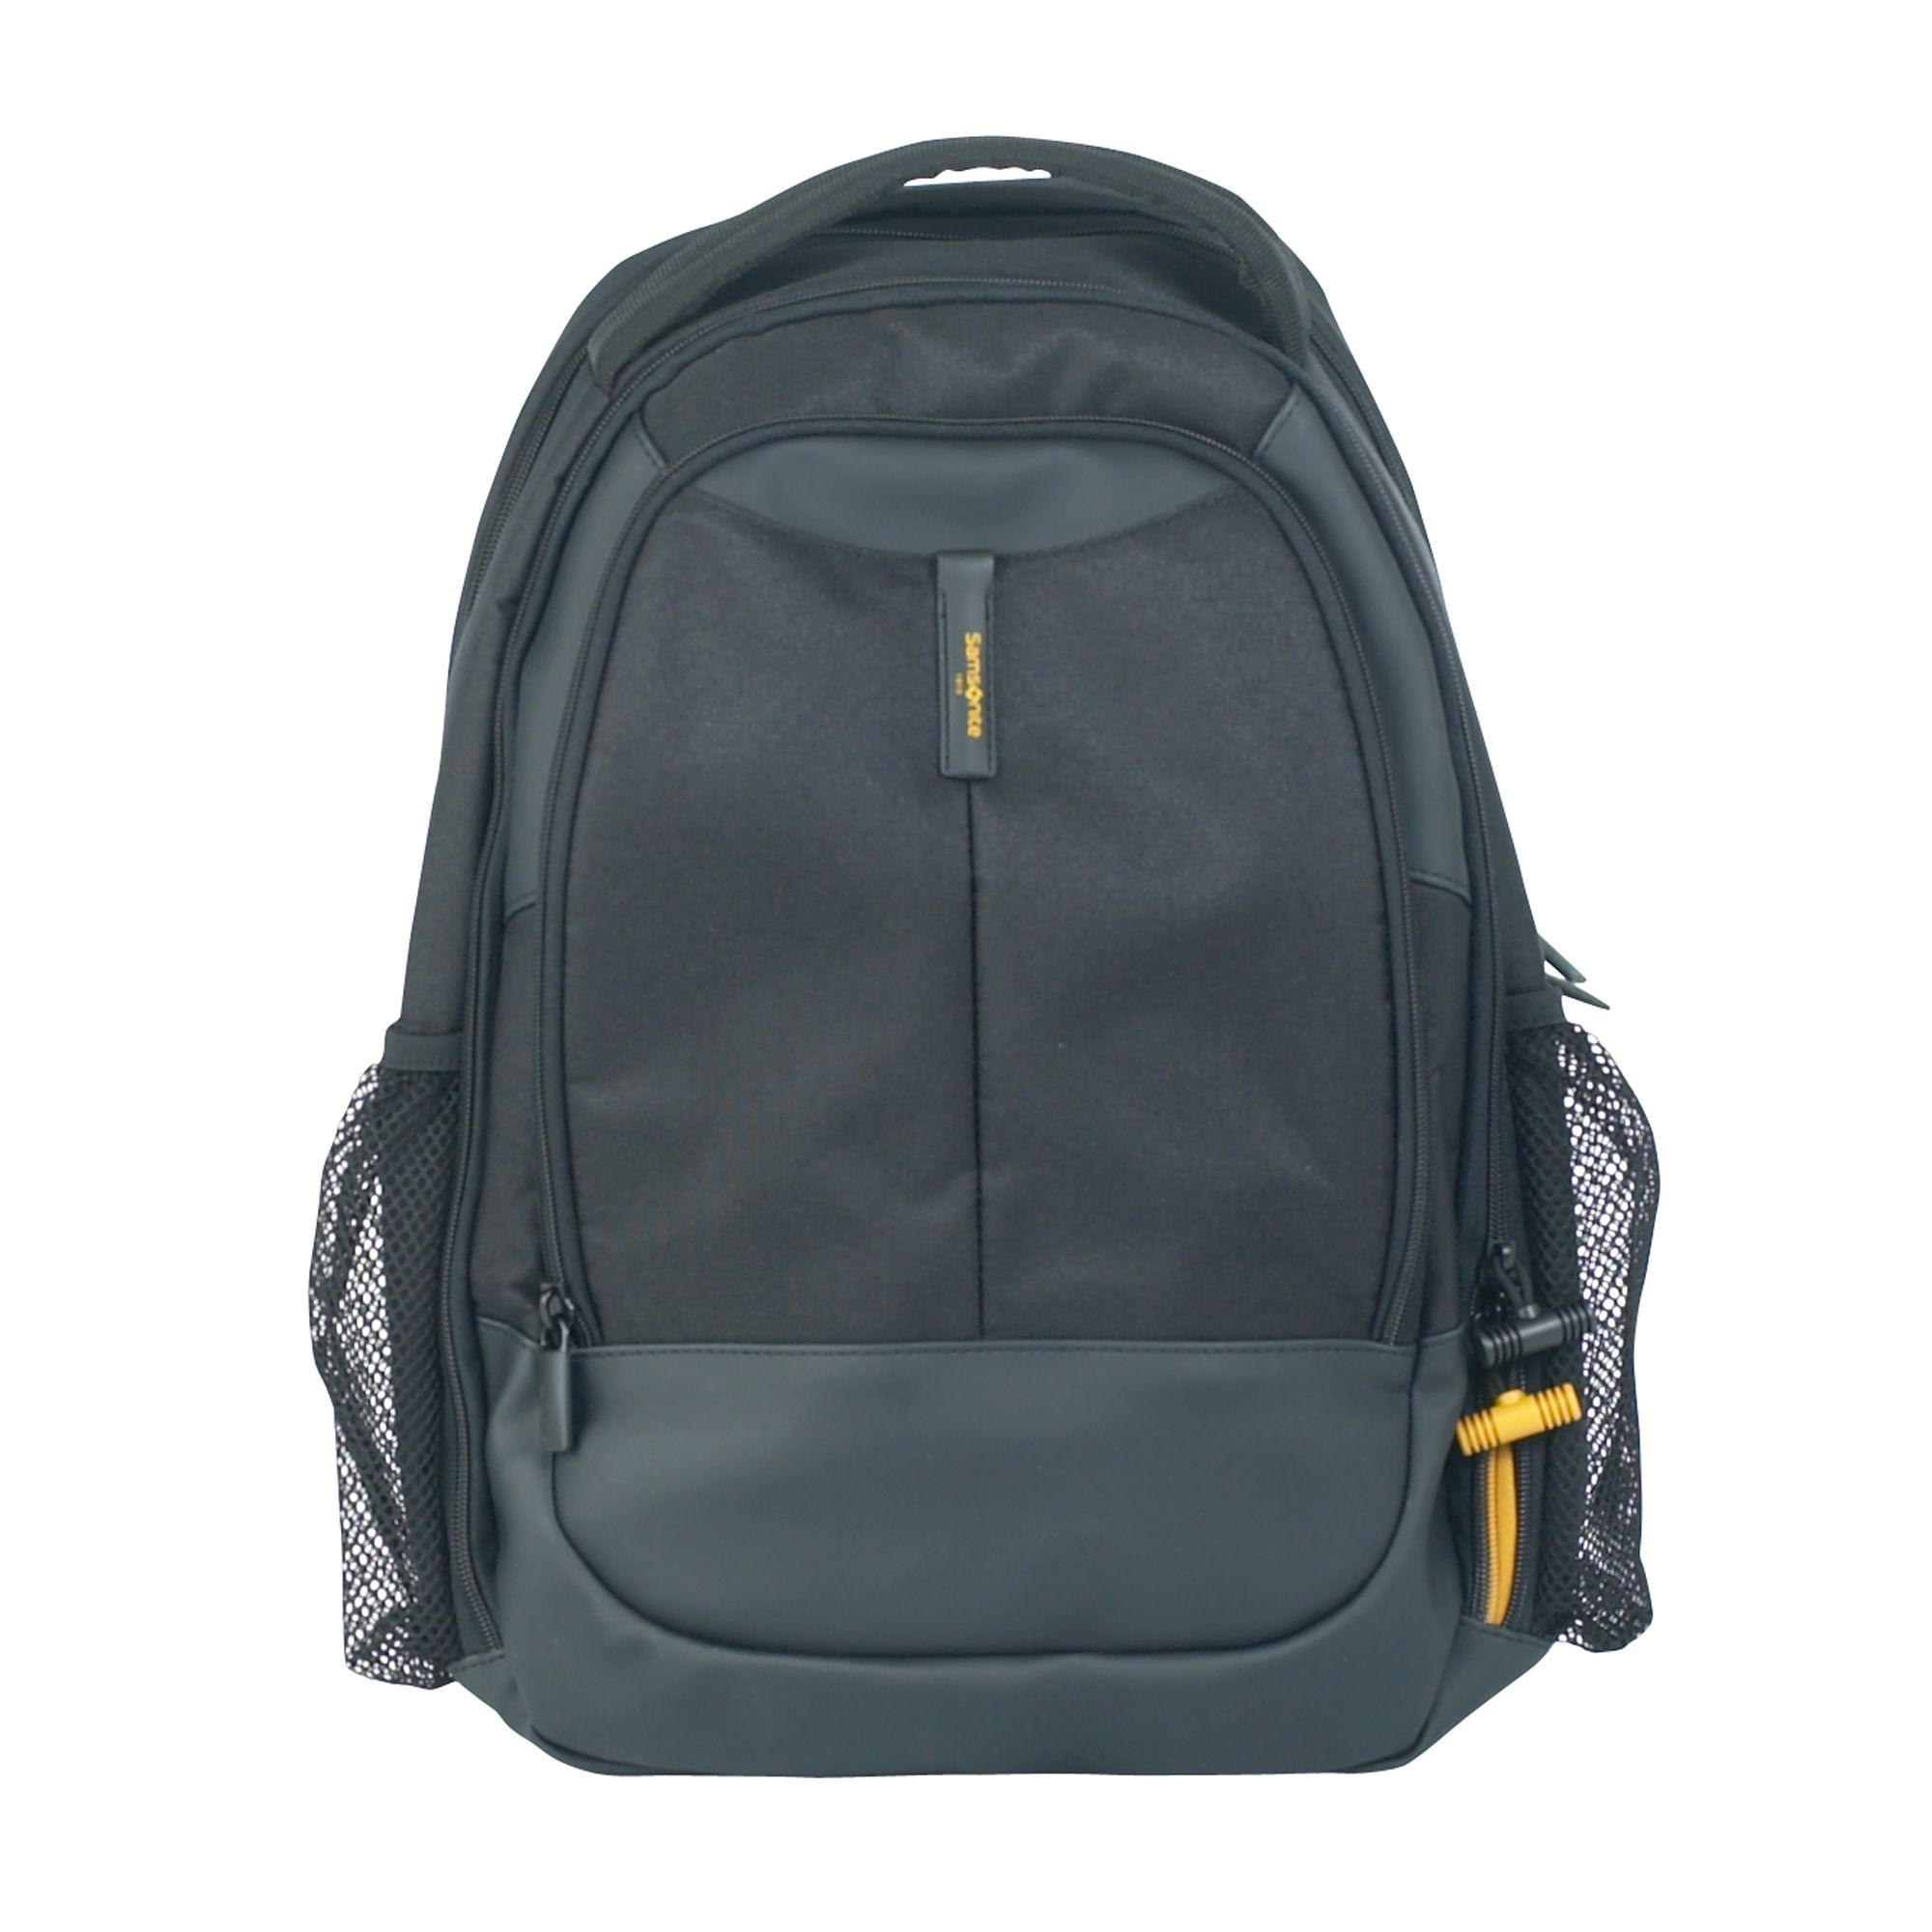 Freeminder Flex laptop backpack in black